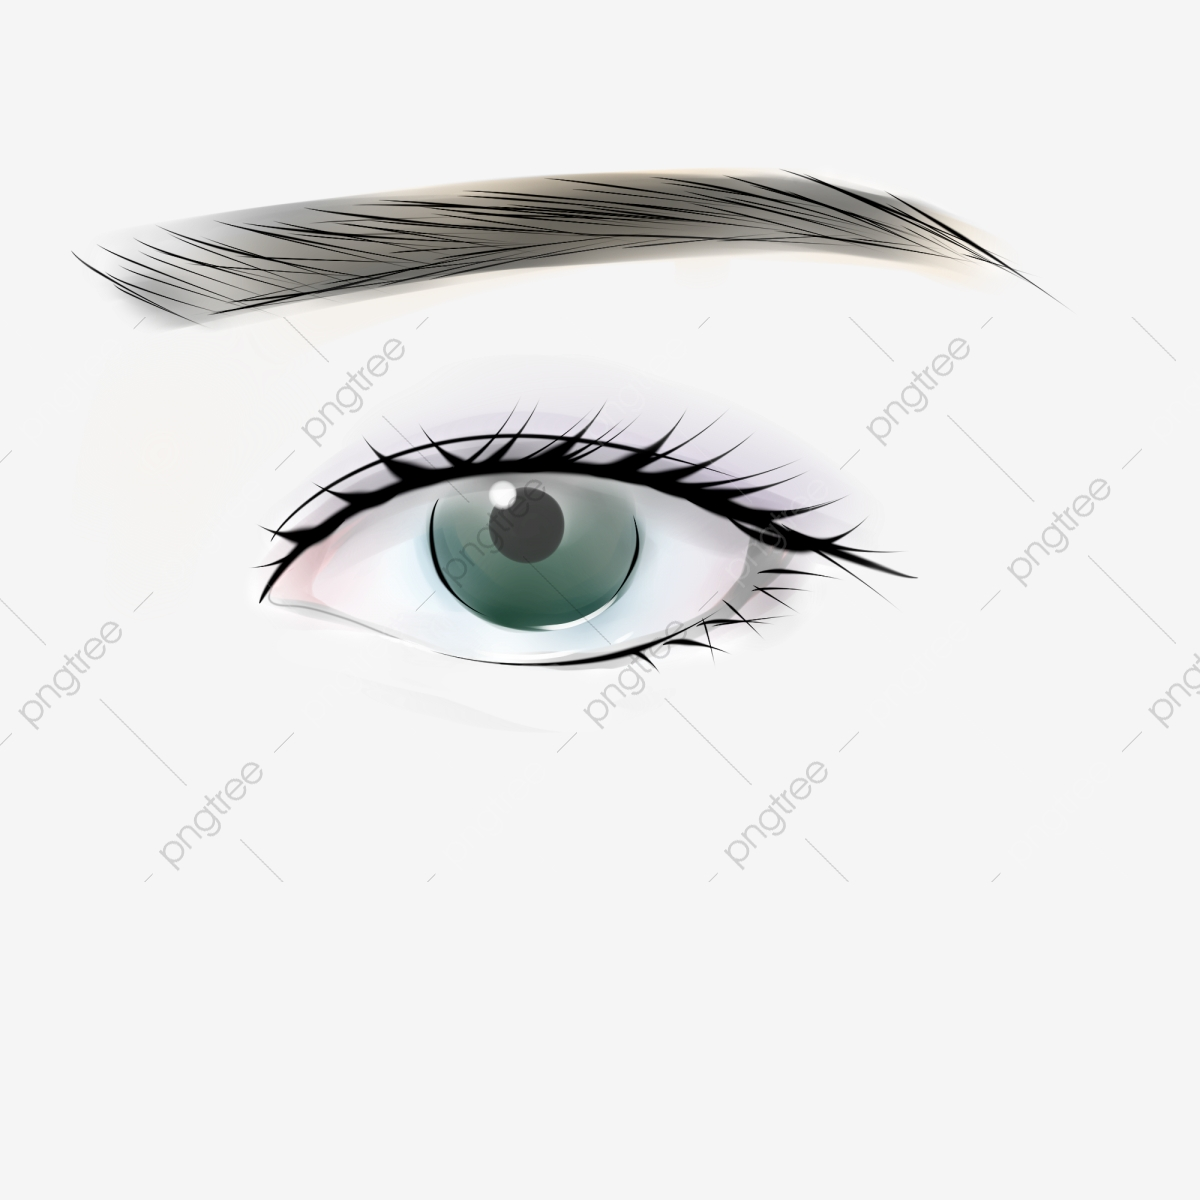 Sai Hand Green Sad Eye Sai Hand Painted Green Png Transparent Clipart Image And Psd File For Free Download